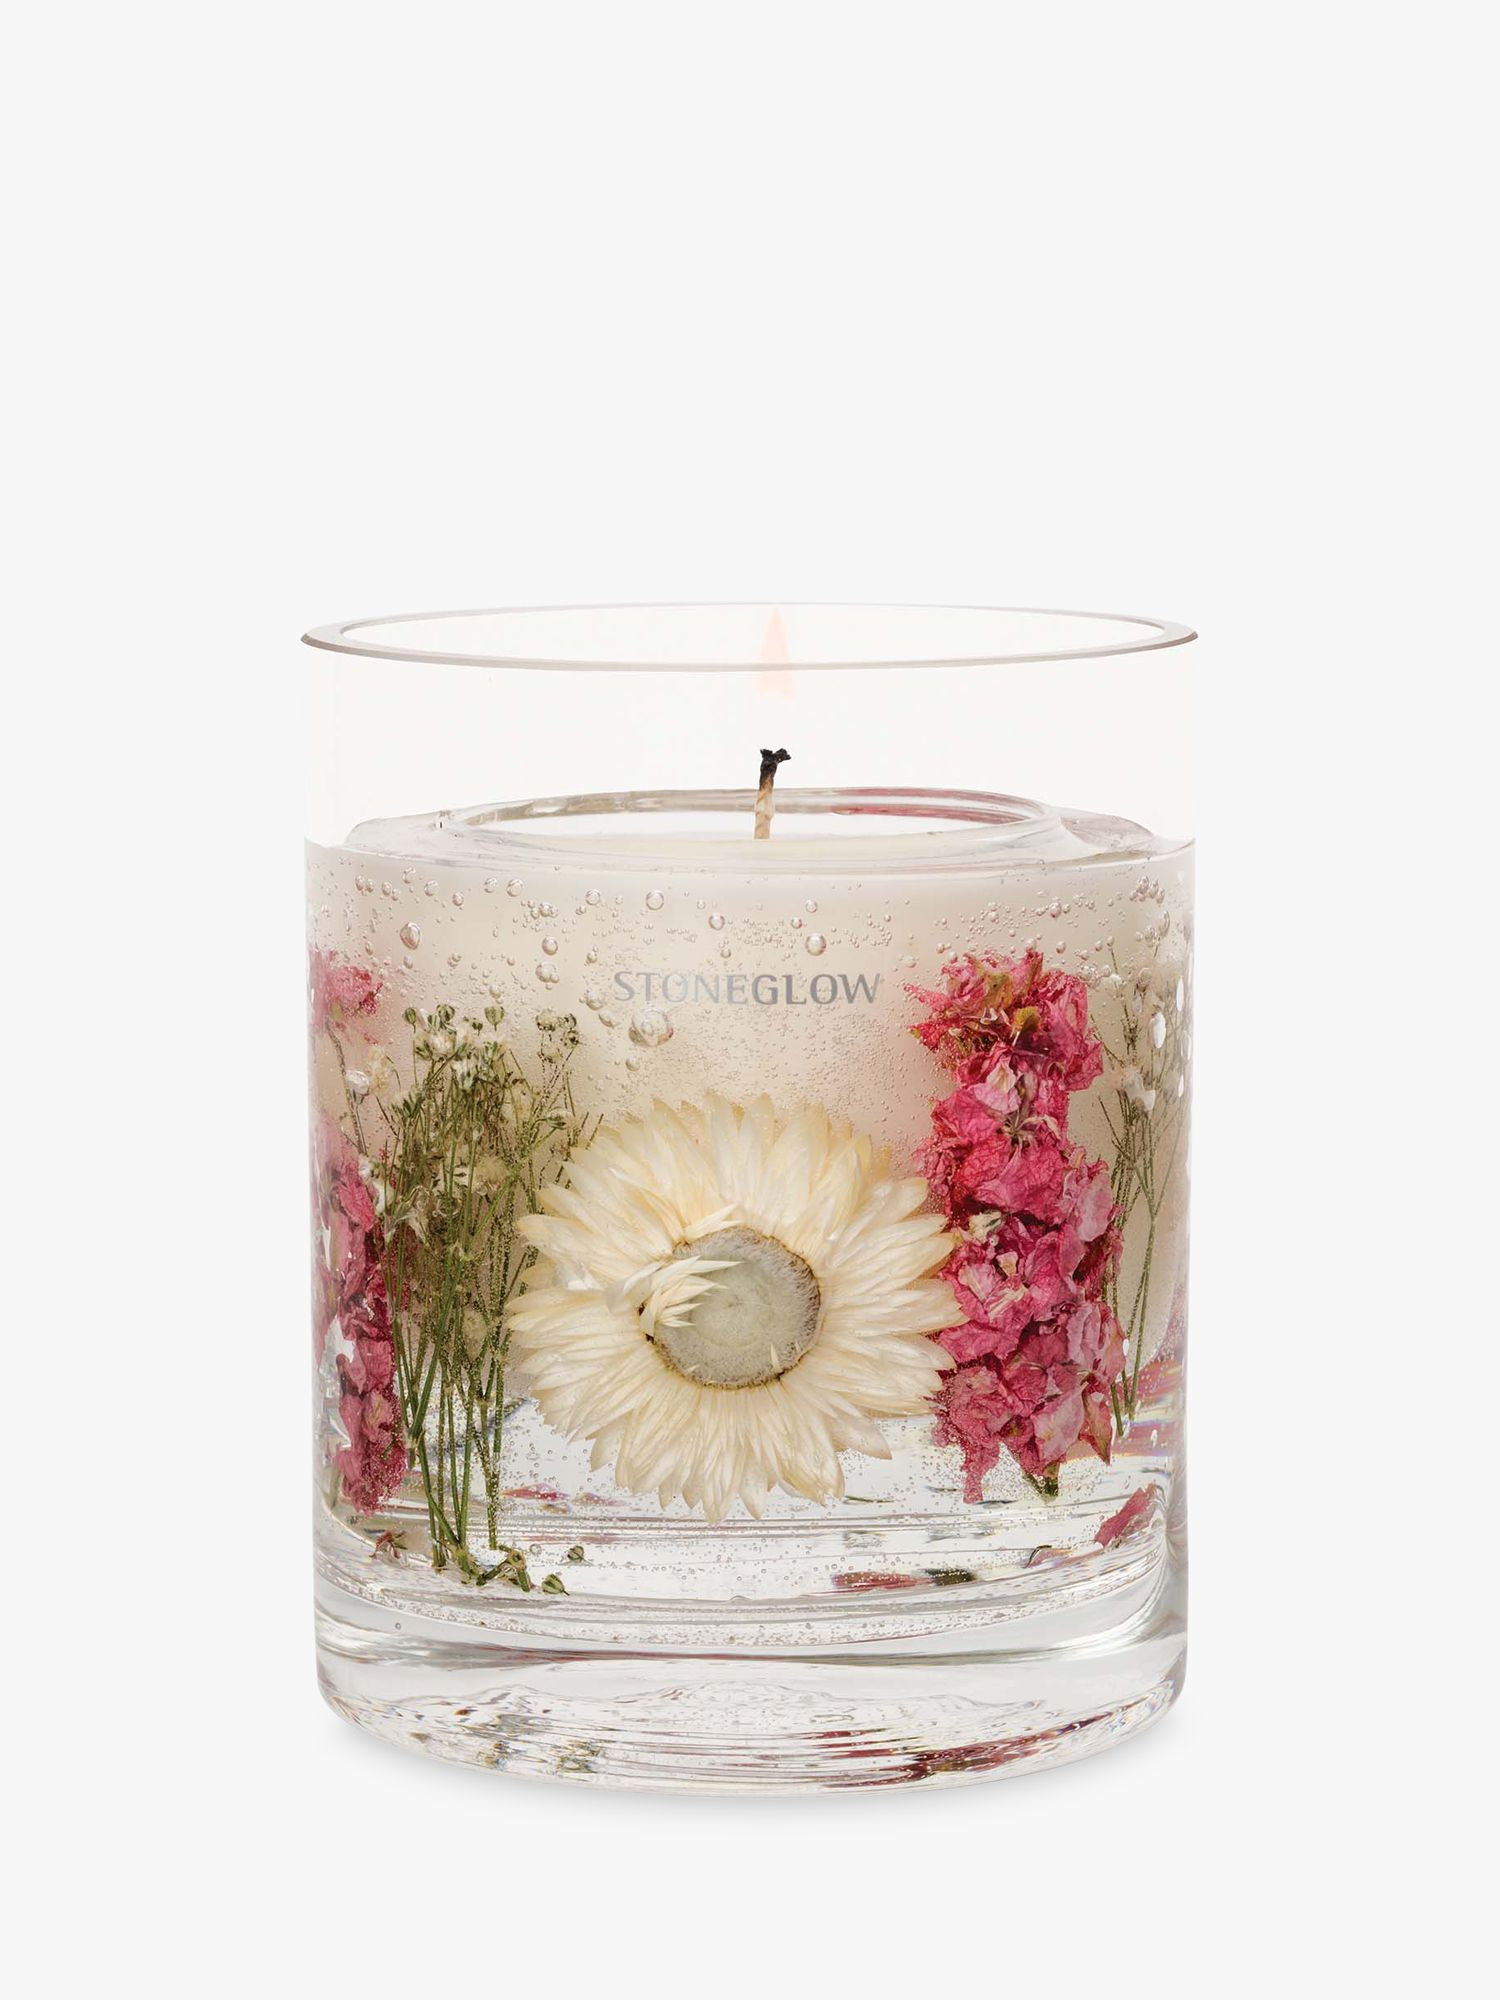 Stoneglow Stoneglow Natures Gift Geranium Rosa Gel Scented Candle, 160g